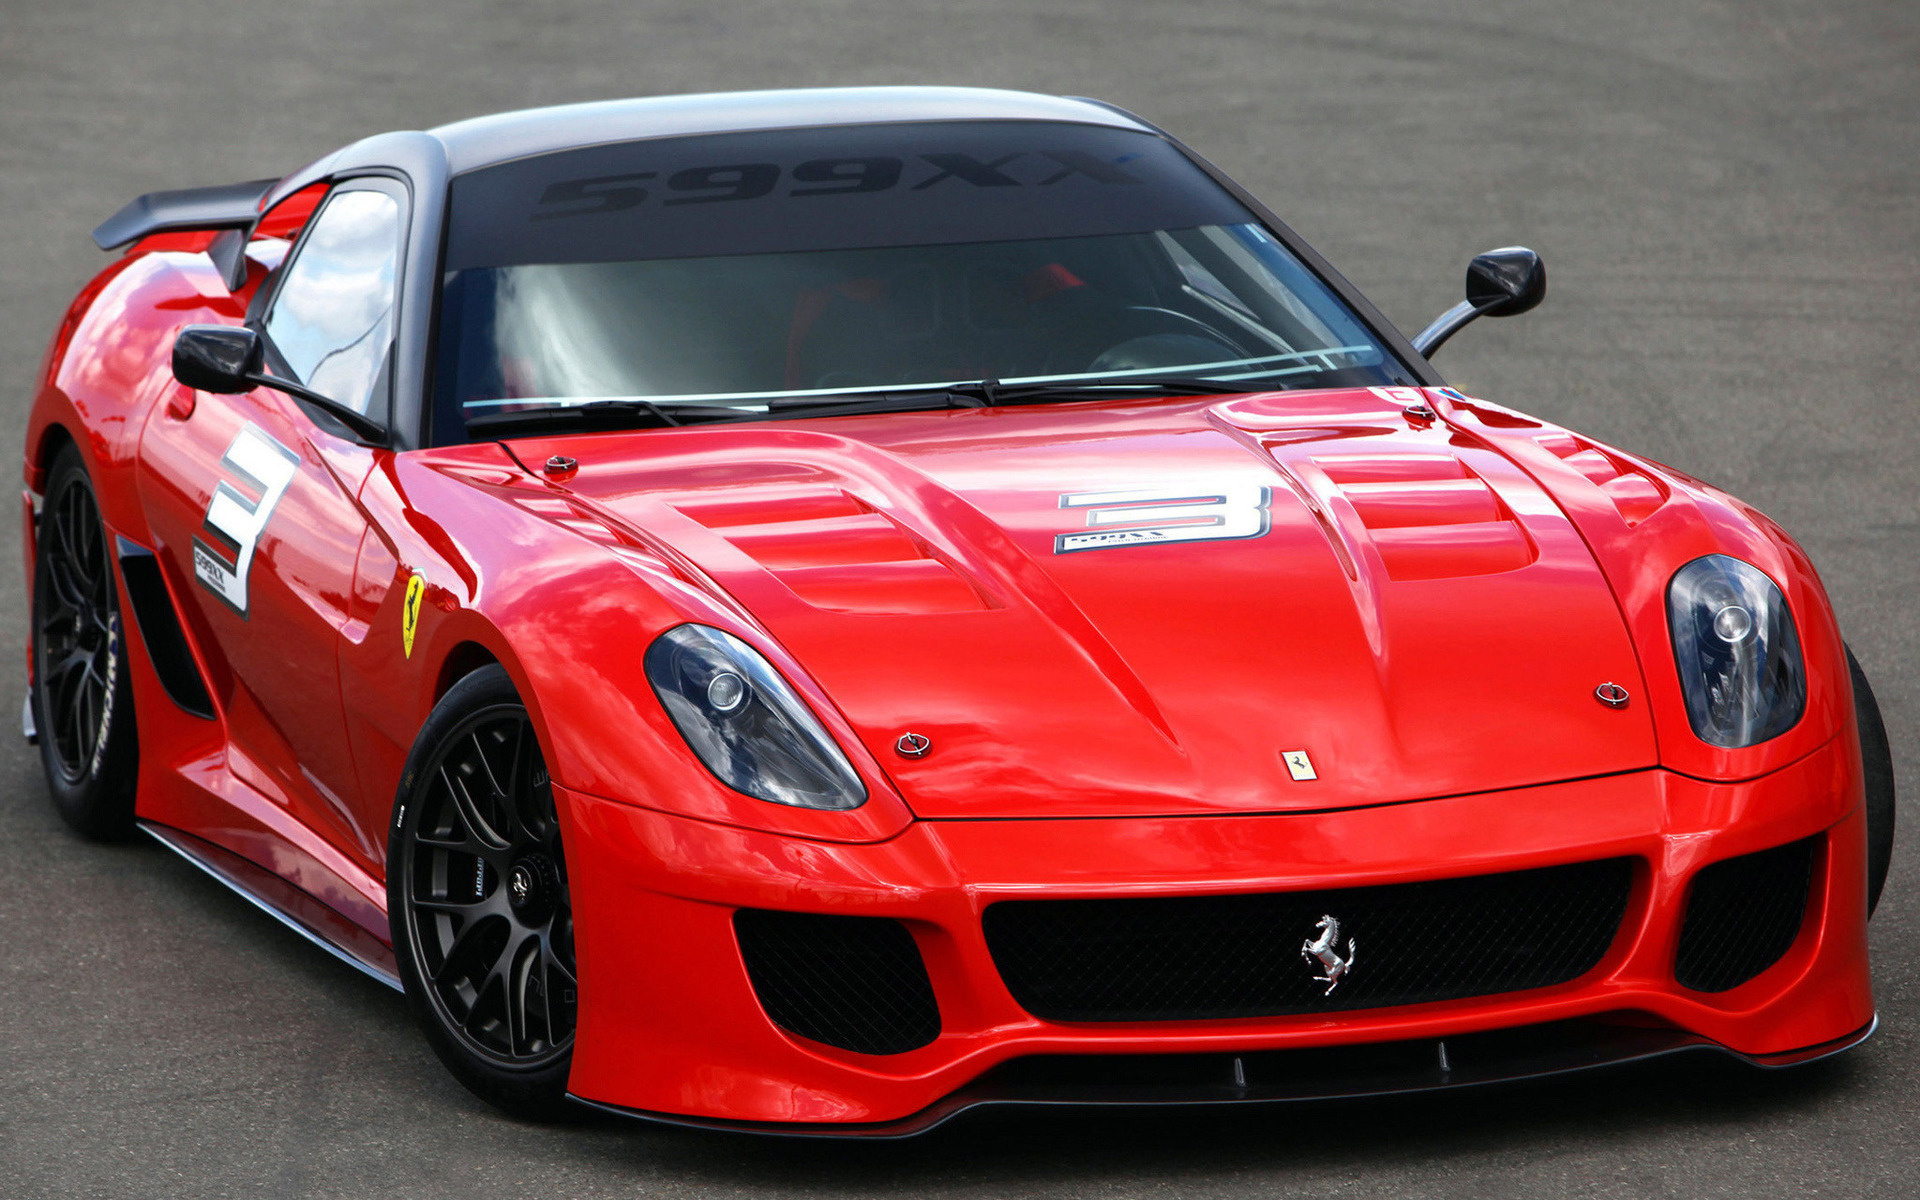 gto 599xx Wallpaper auto sports car super car desktop Wallpapers 1920x1200